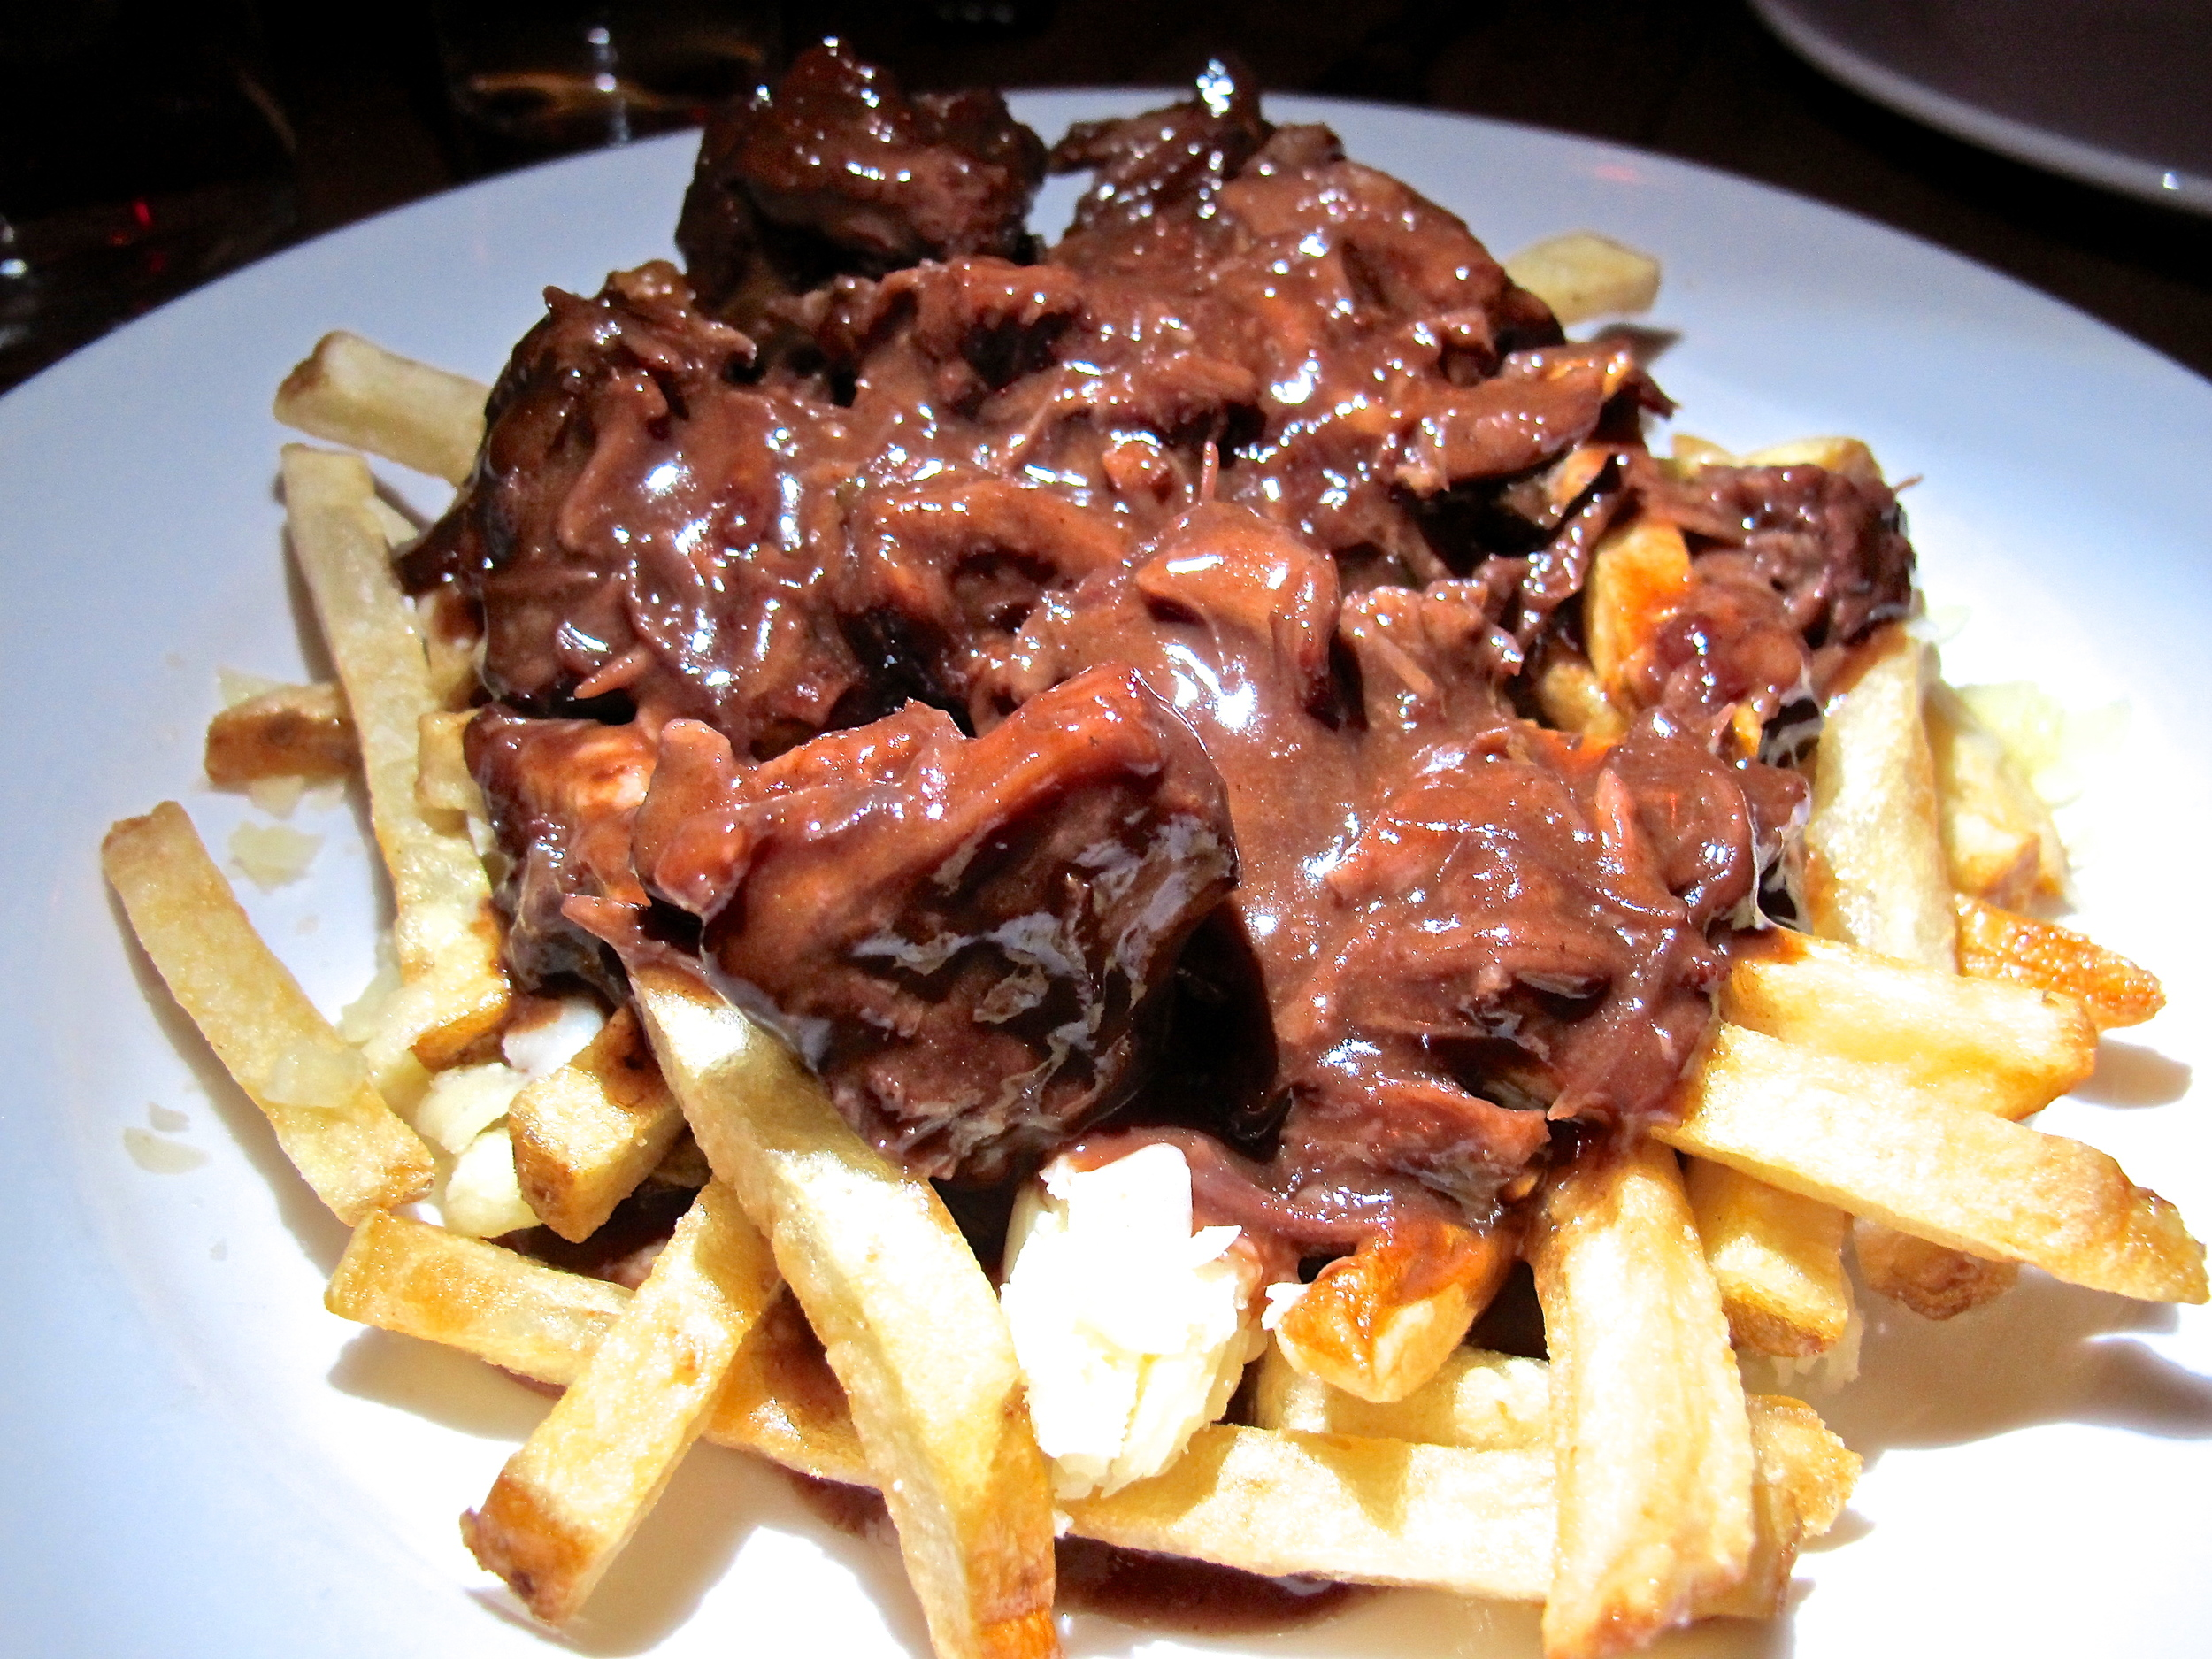 Nothing wrong with a little poutine with oxtail gravy.